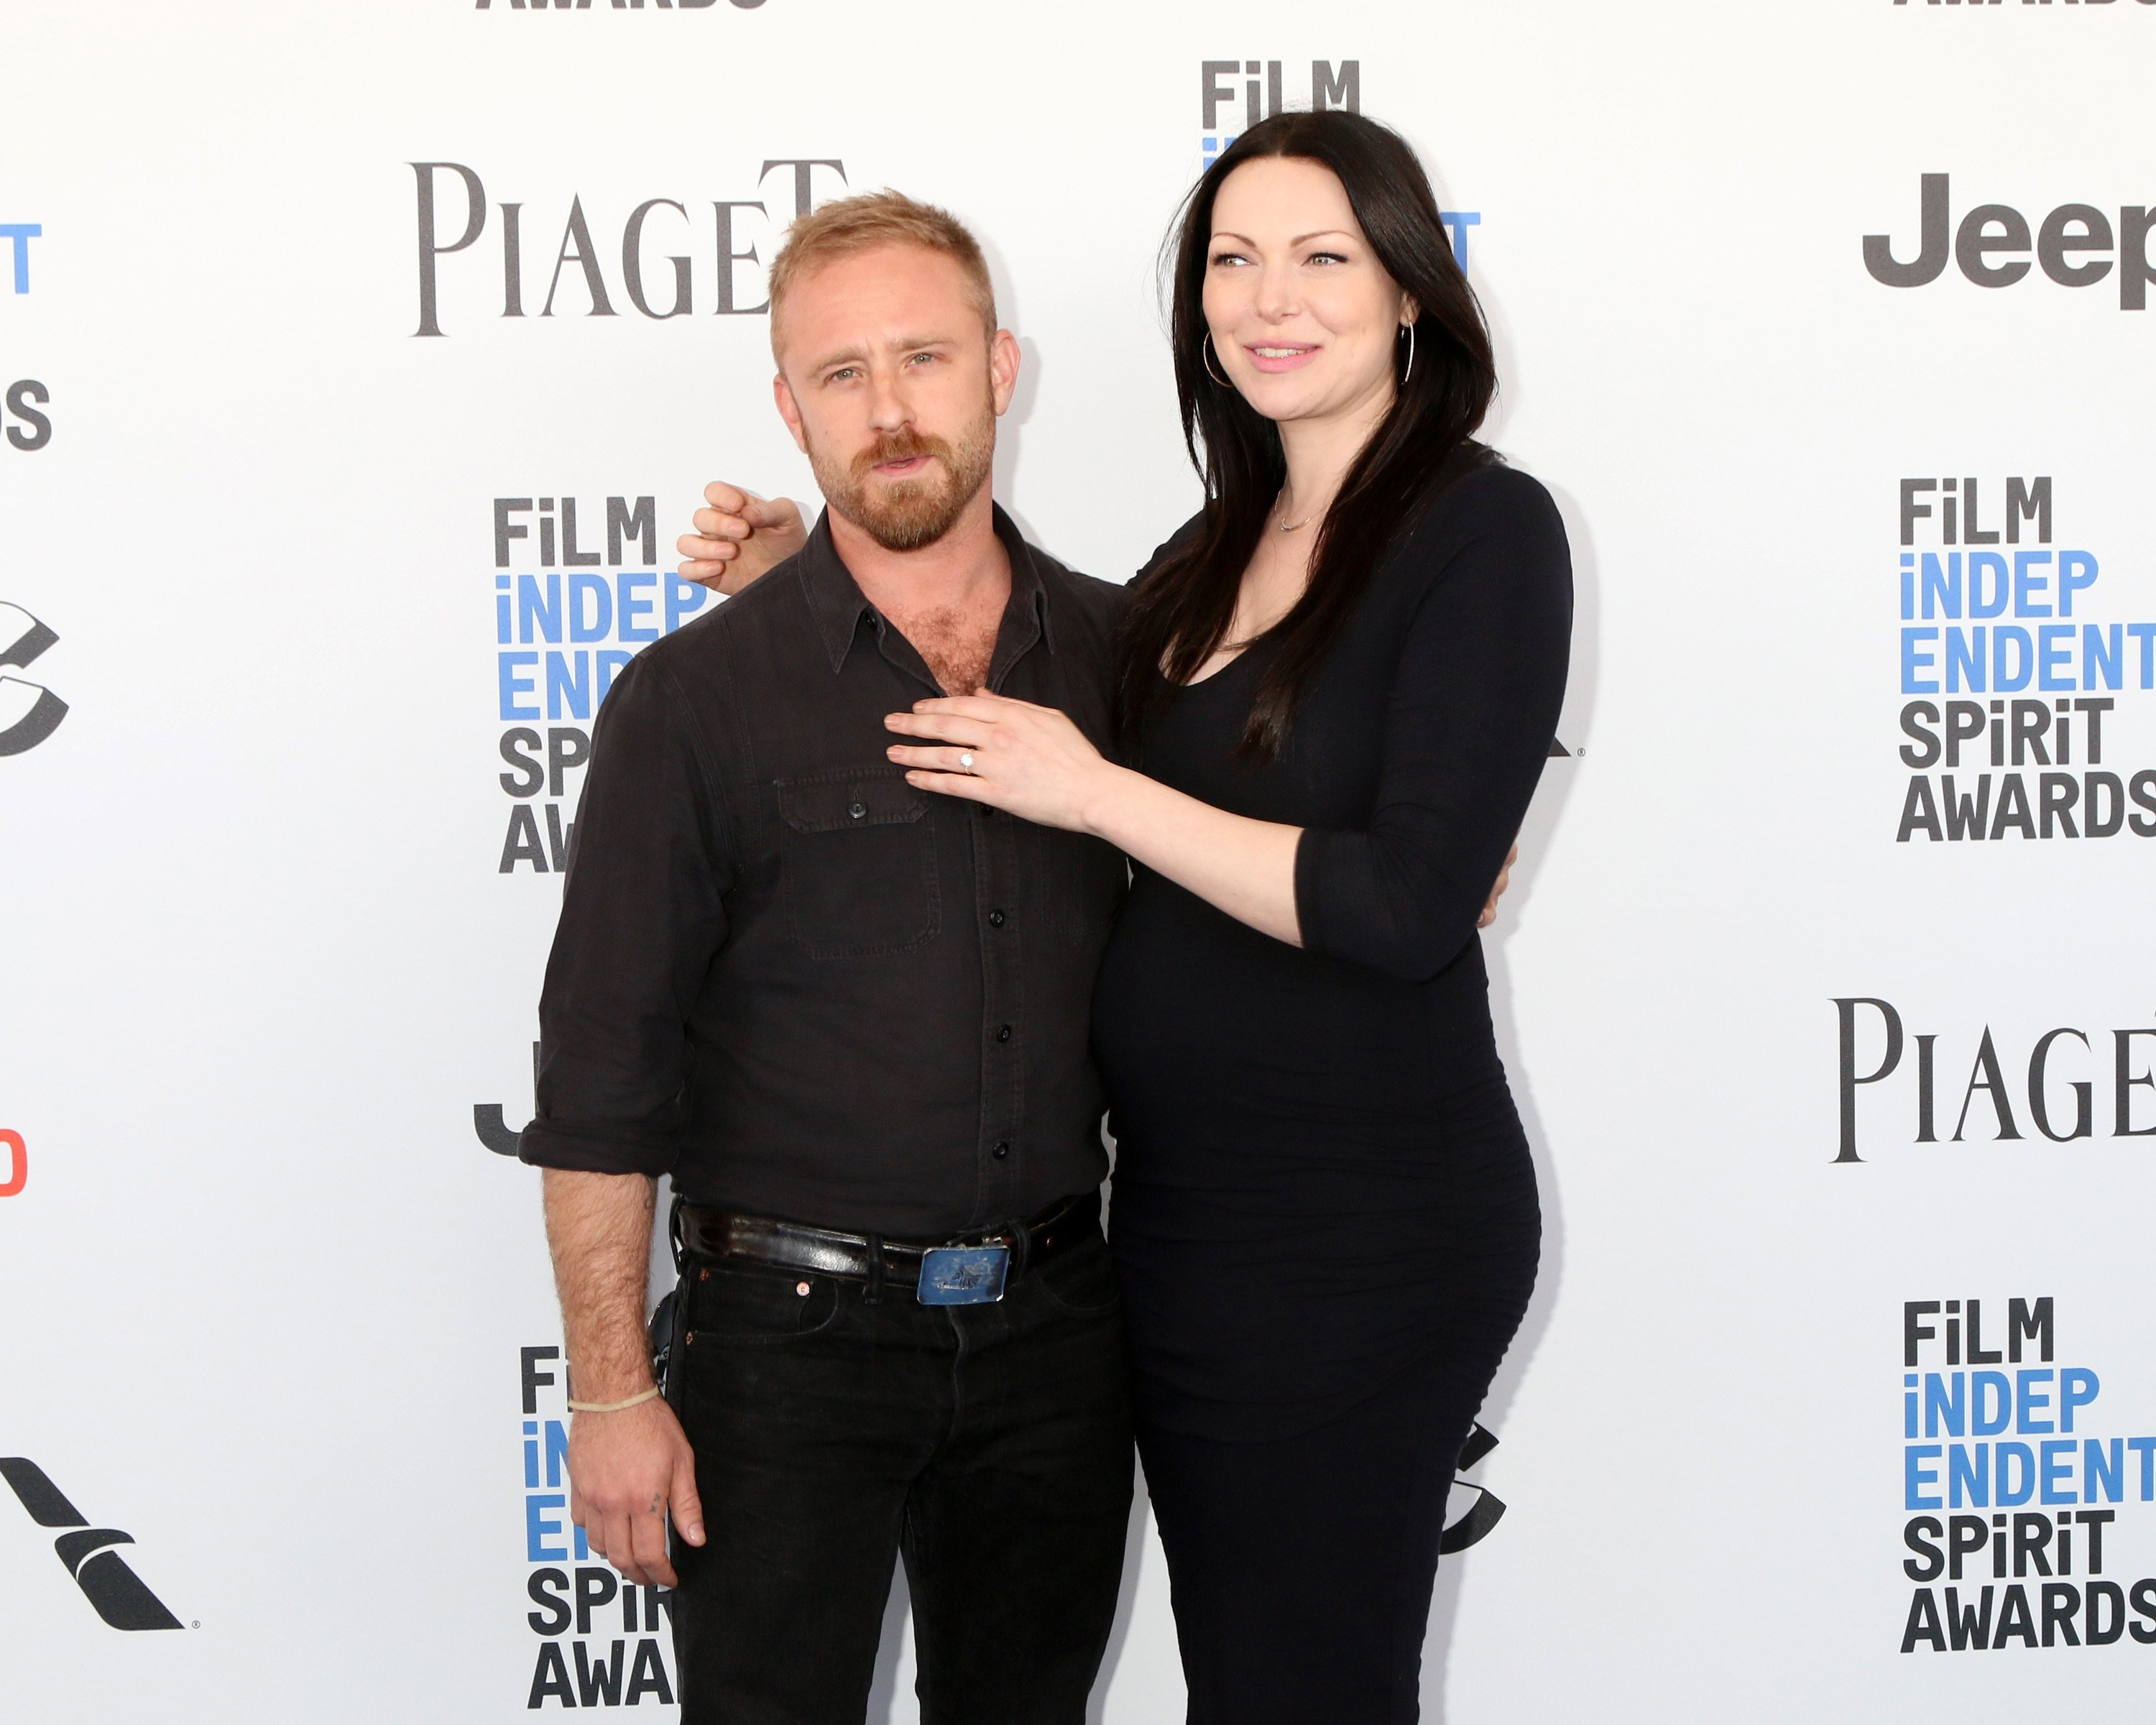 Ben Foster and Laura Prepon arrive at the Independent Spirit Awards on February 25, 2017. | Photo: Shutterstock